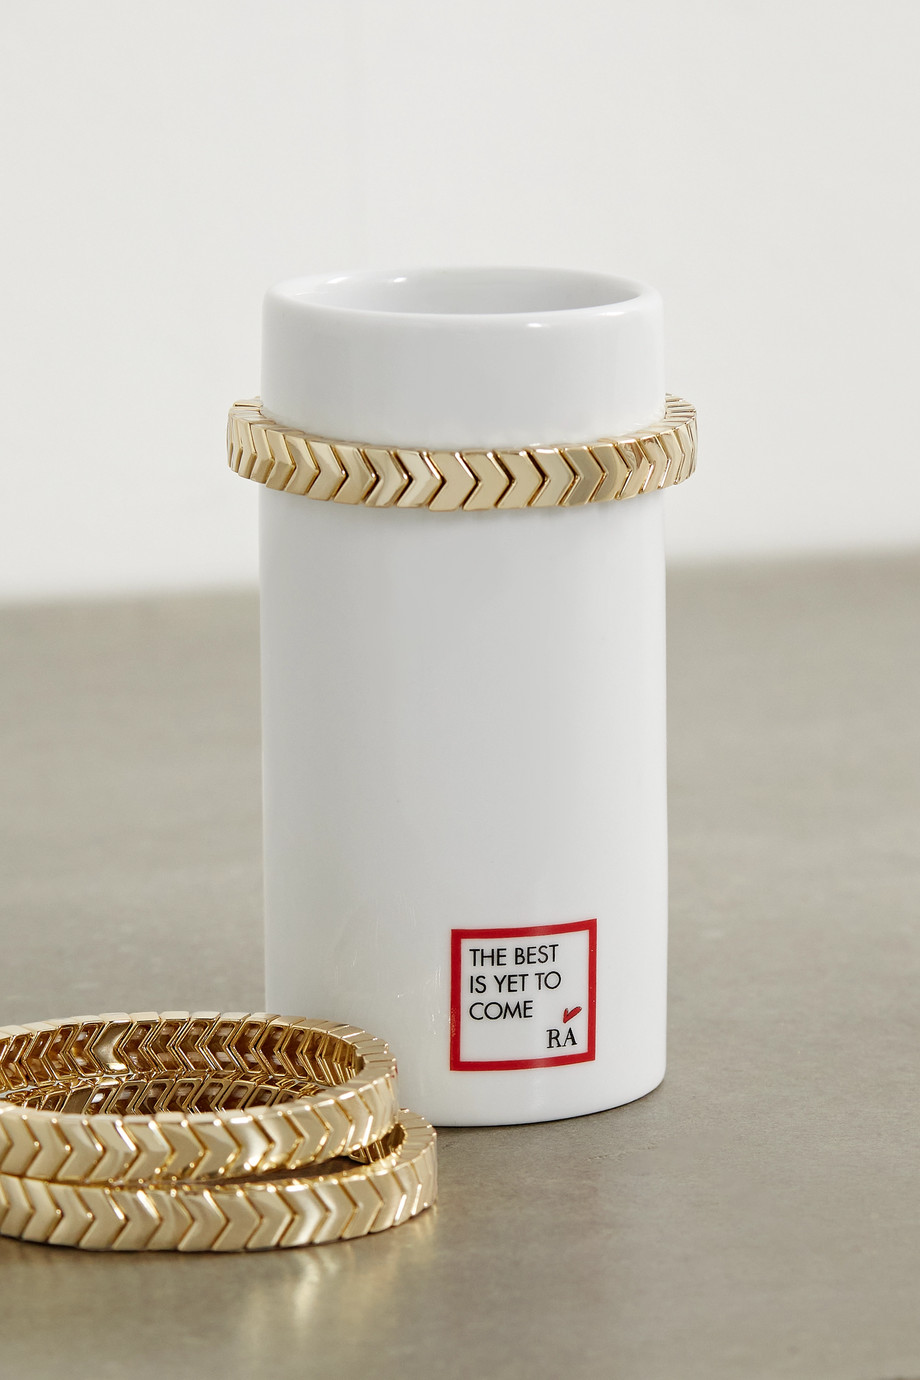 Roxanne Assoulin Stack 'Em Up porcelain vase and set of three gold-tone bracelets